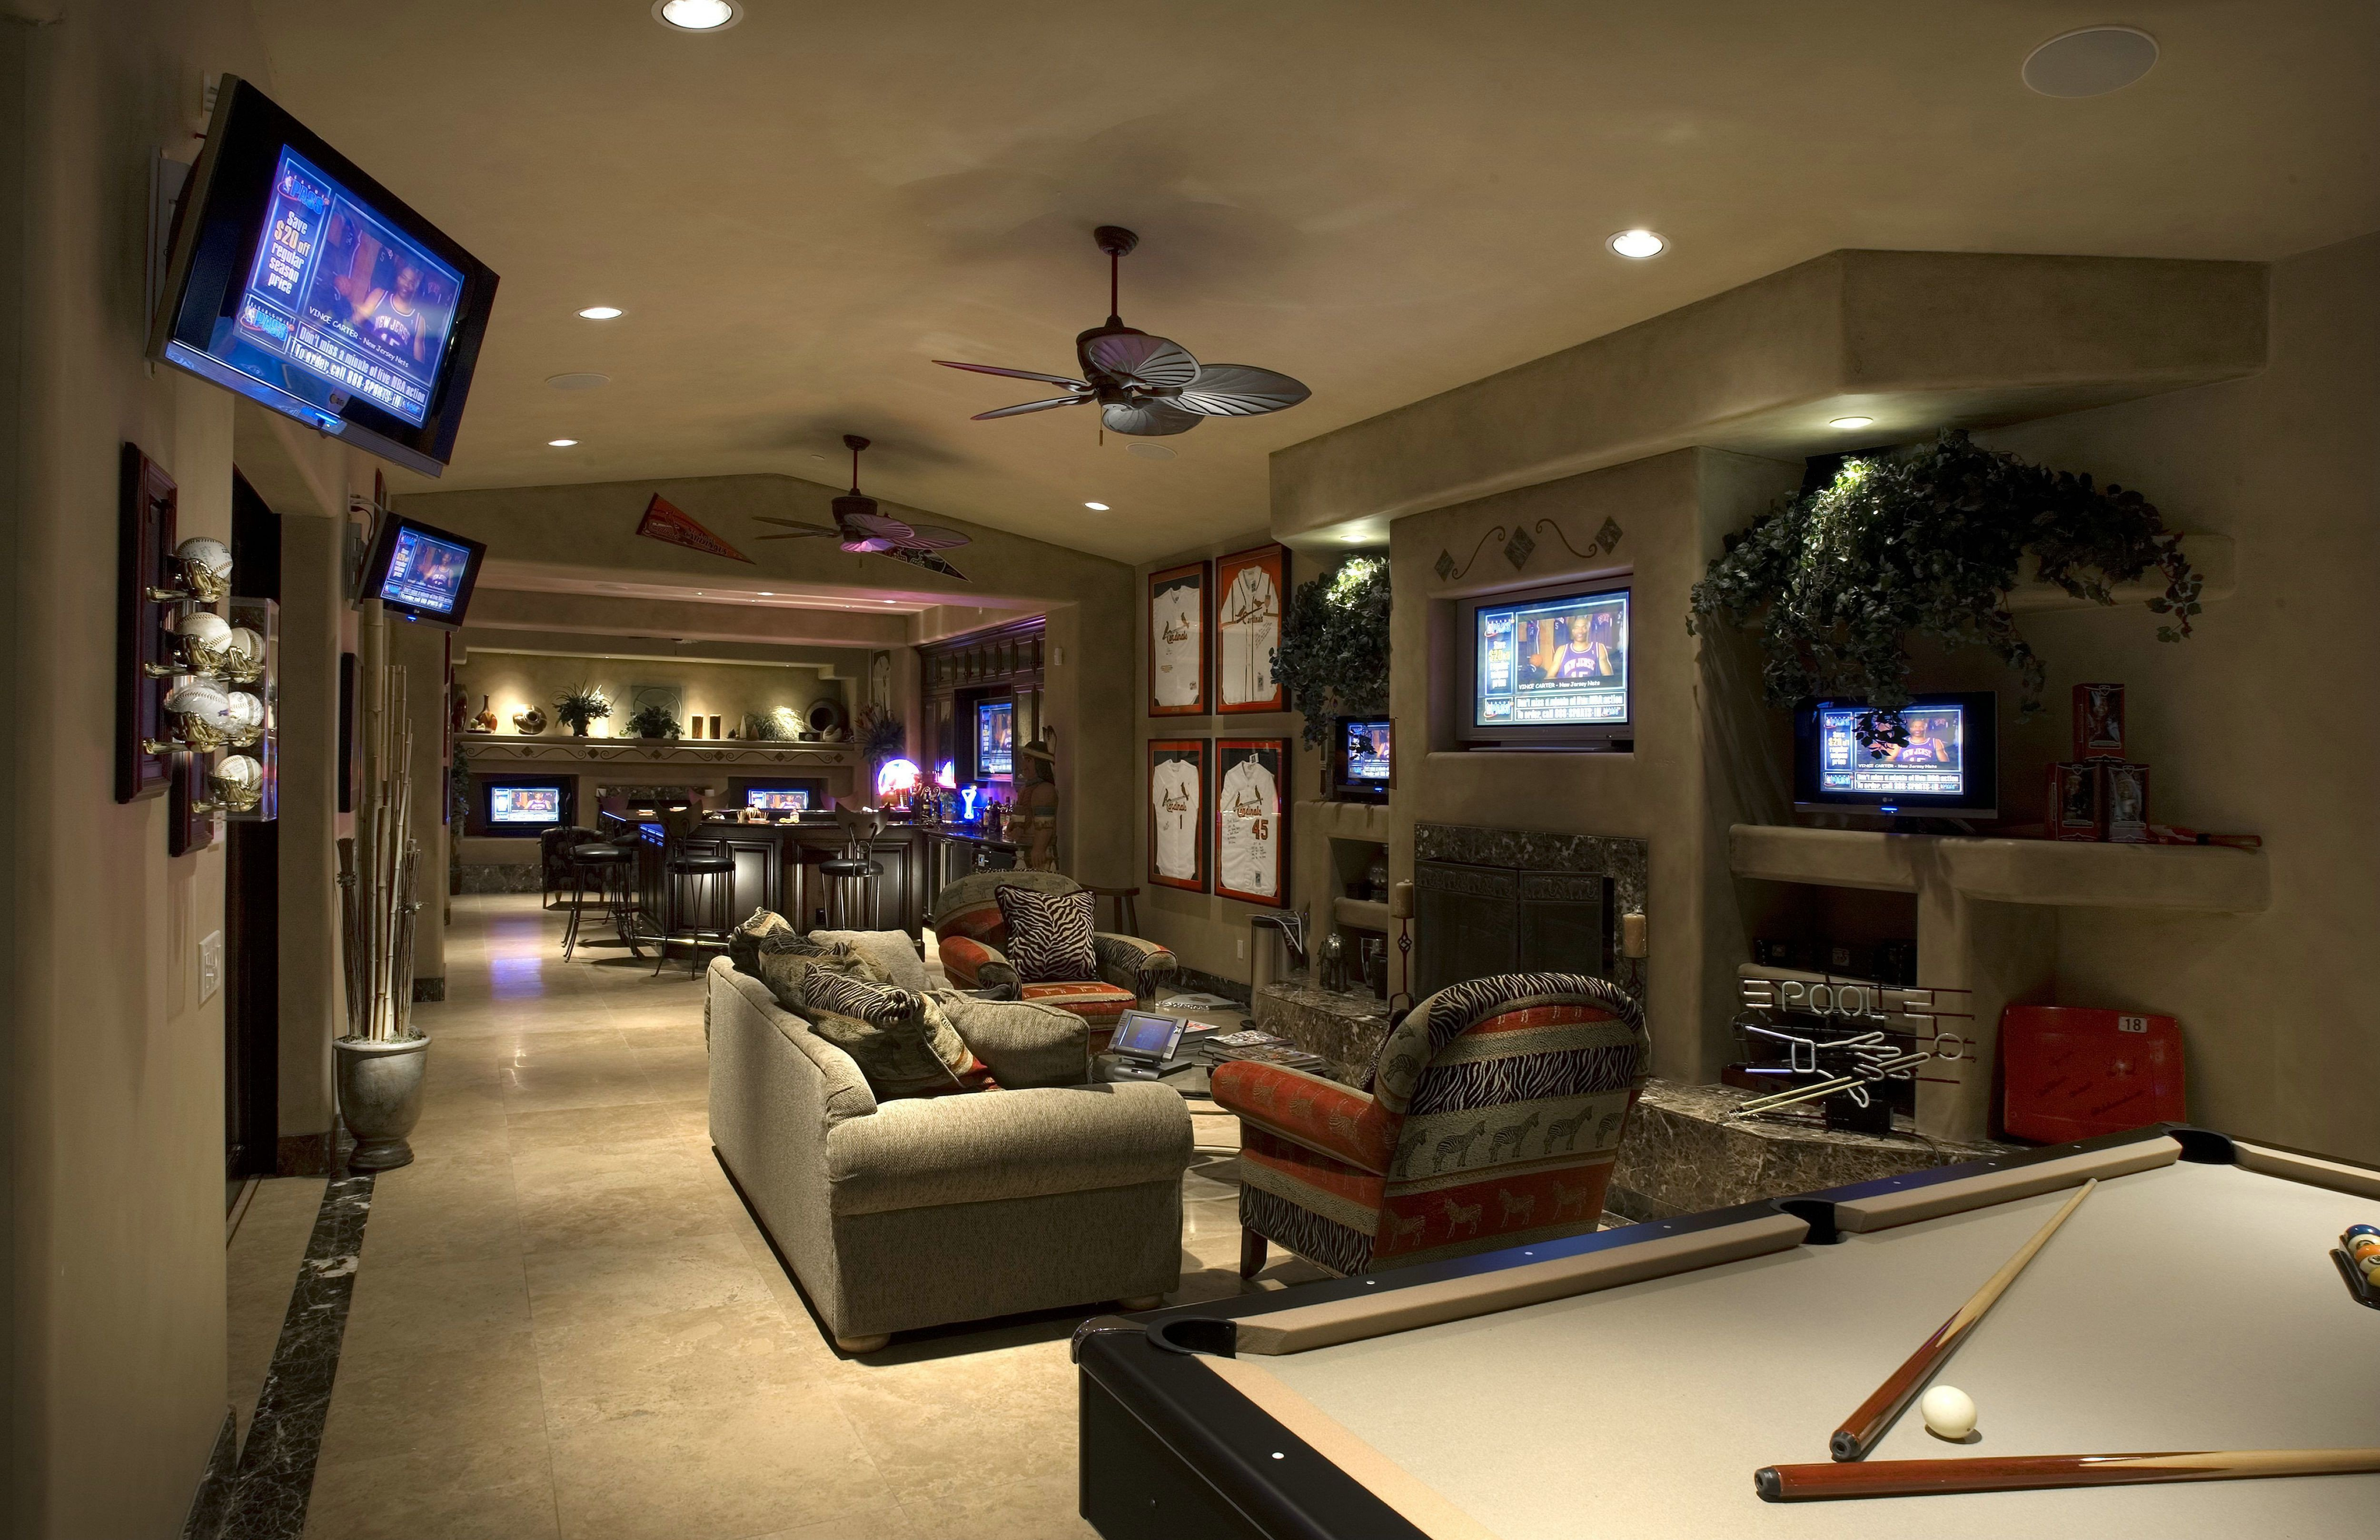 Man Cave Bedroom Ideas Elegant Game Room Man Cave Pretty Much A Great Rec Room